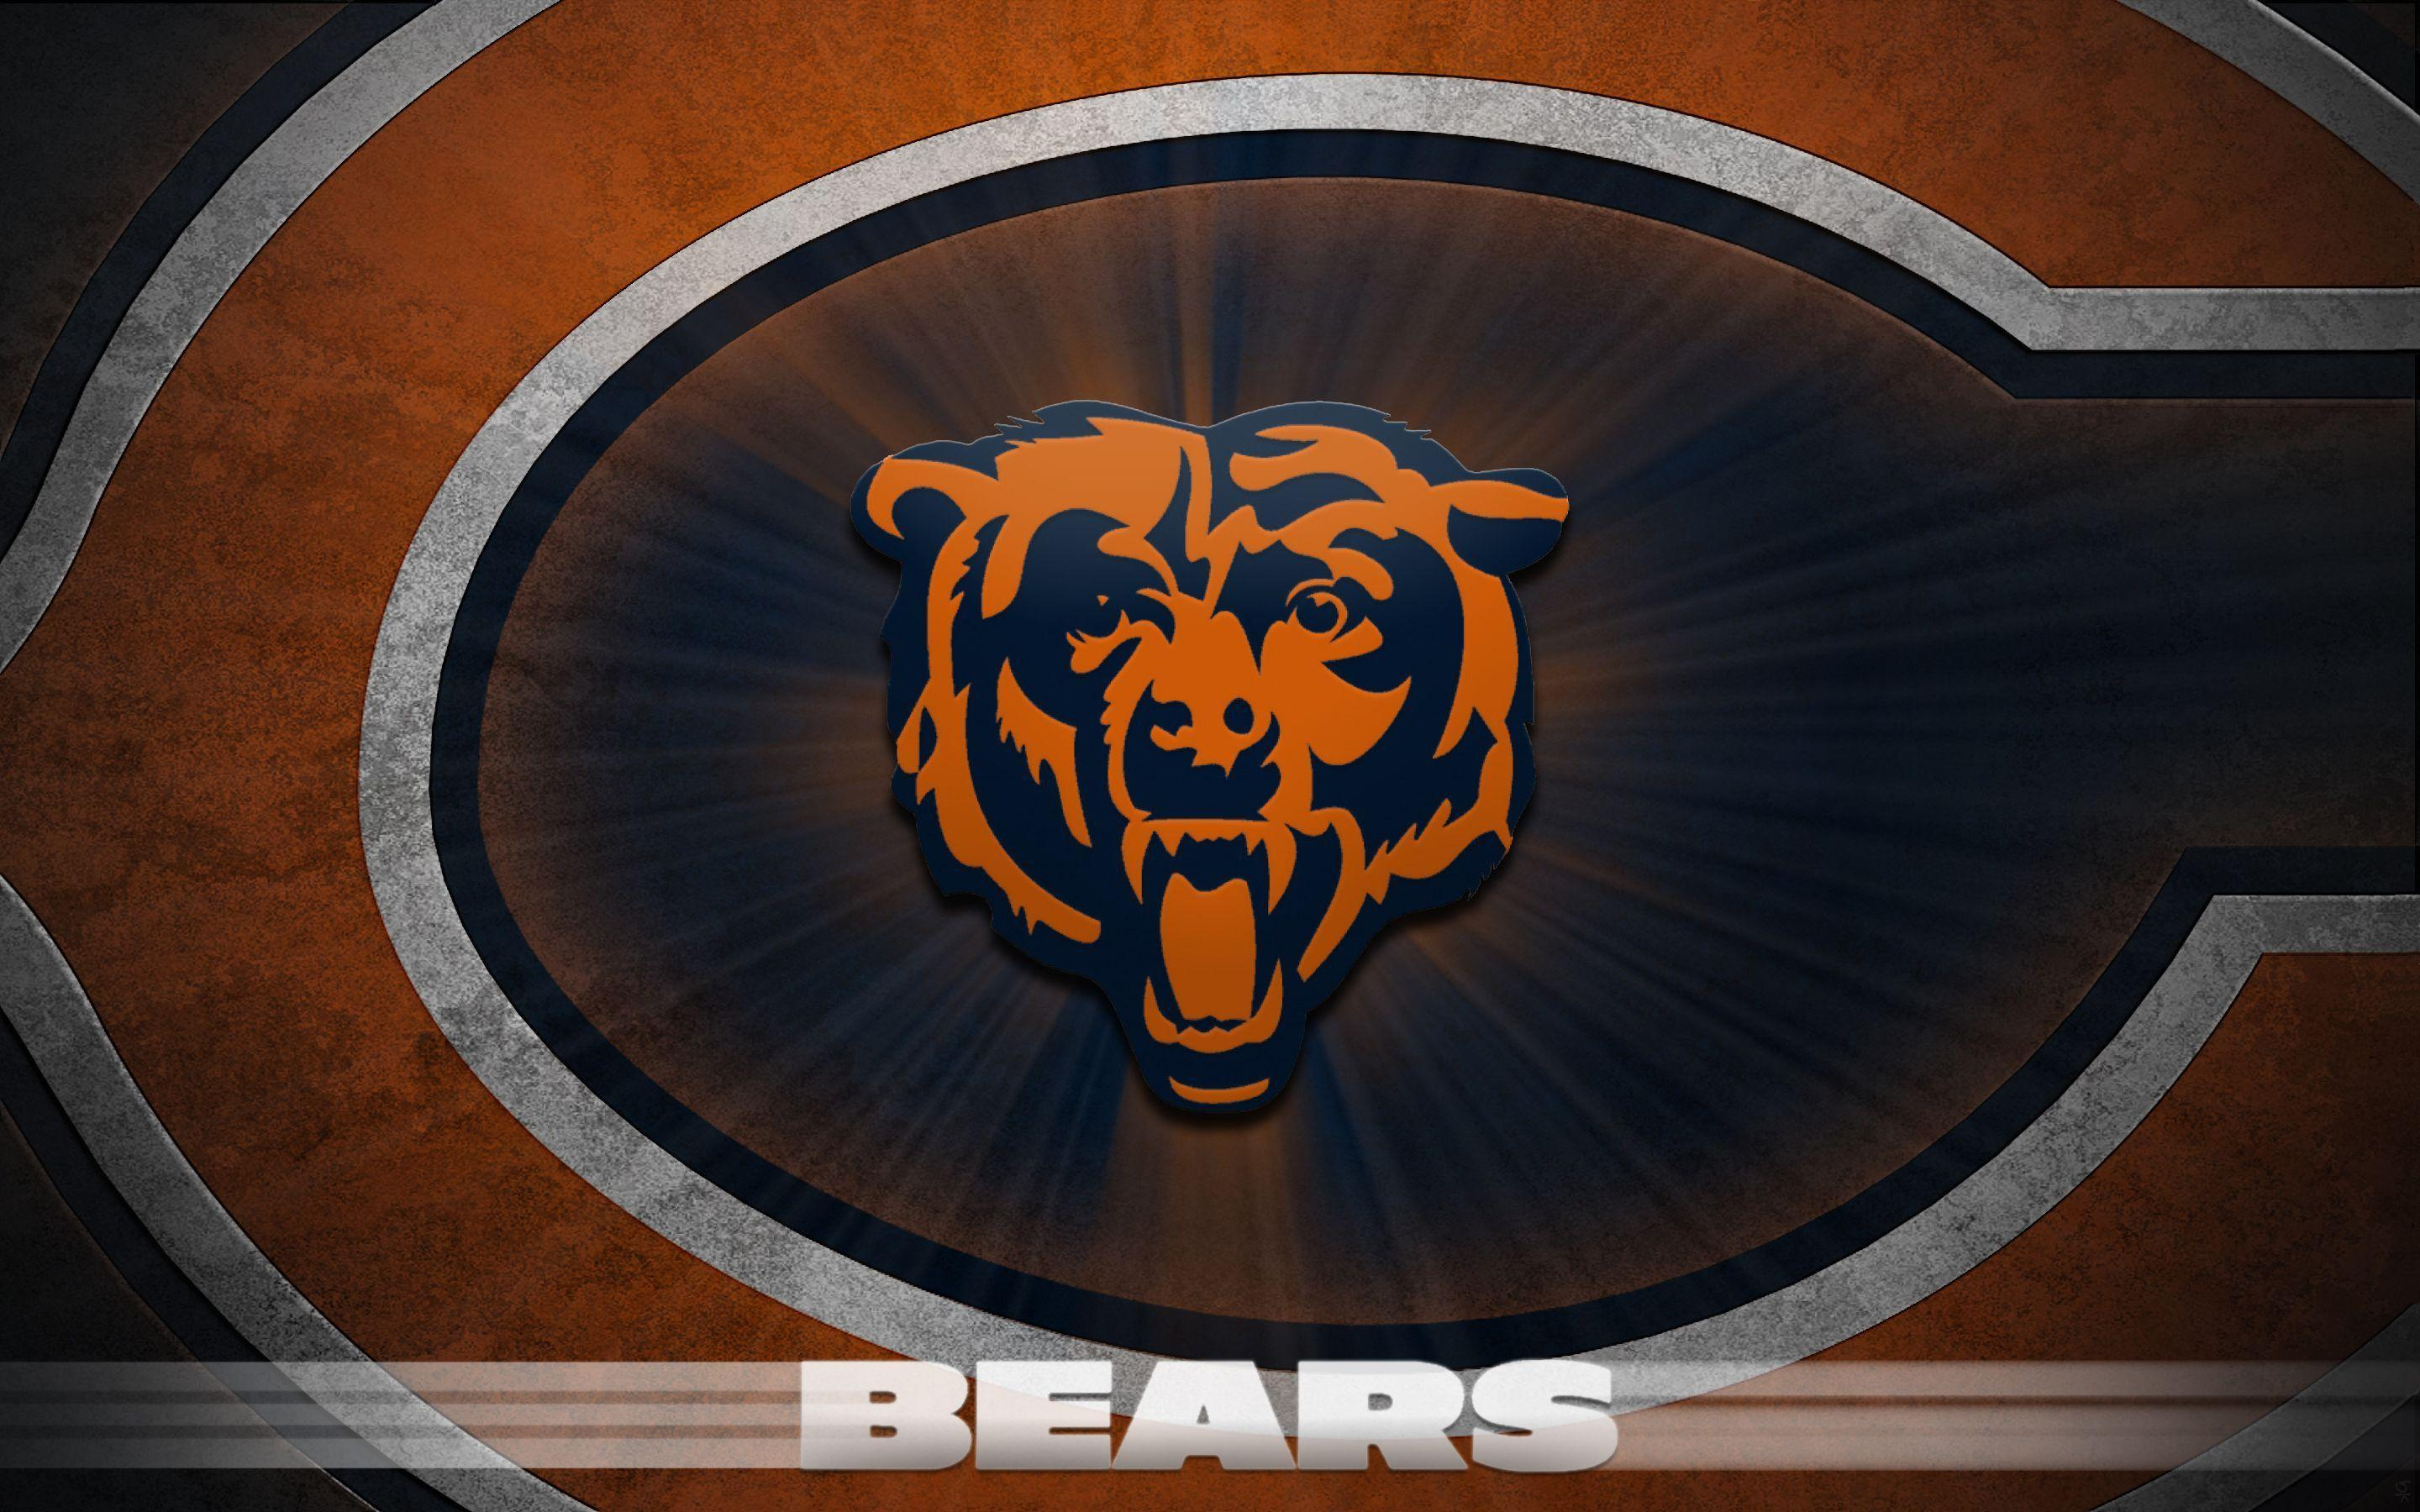 Chicago Bears Wallpapers 2017 2880x1800